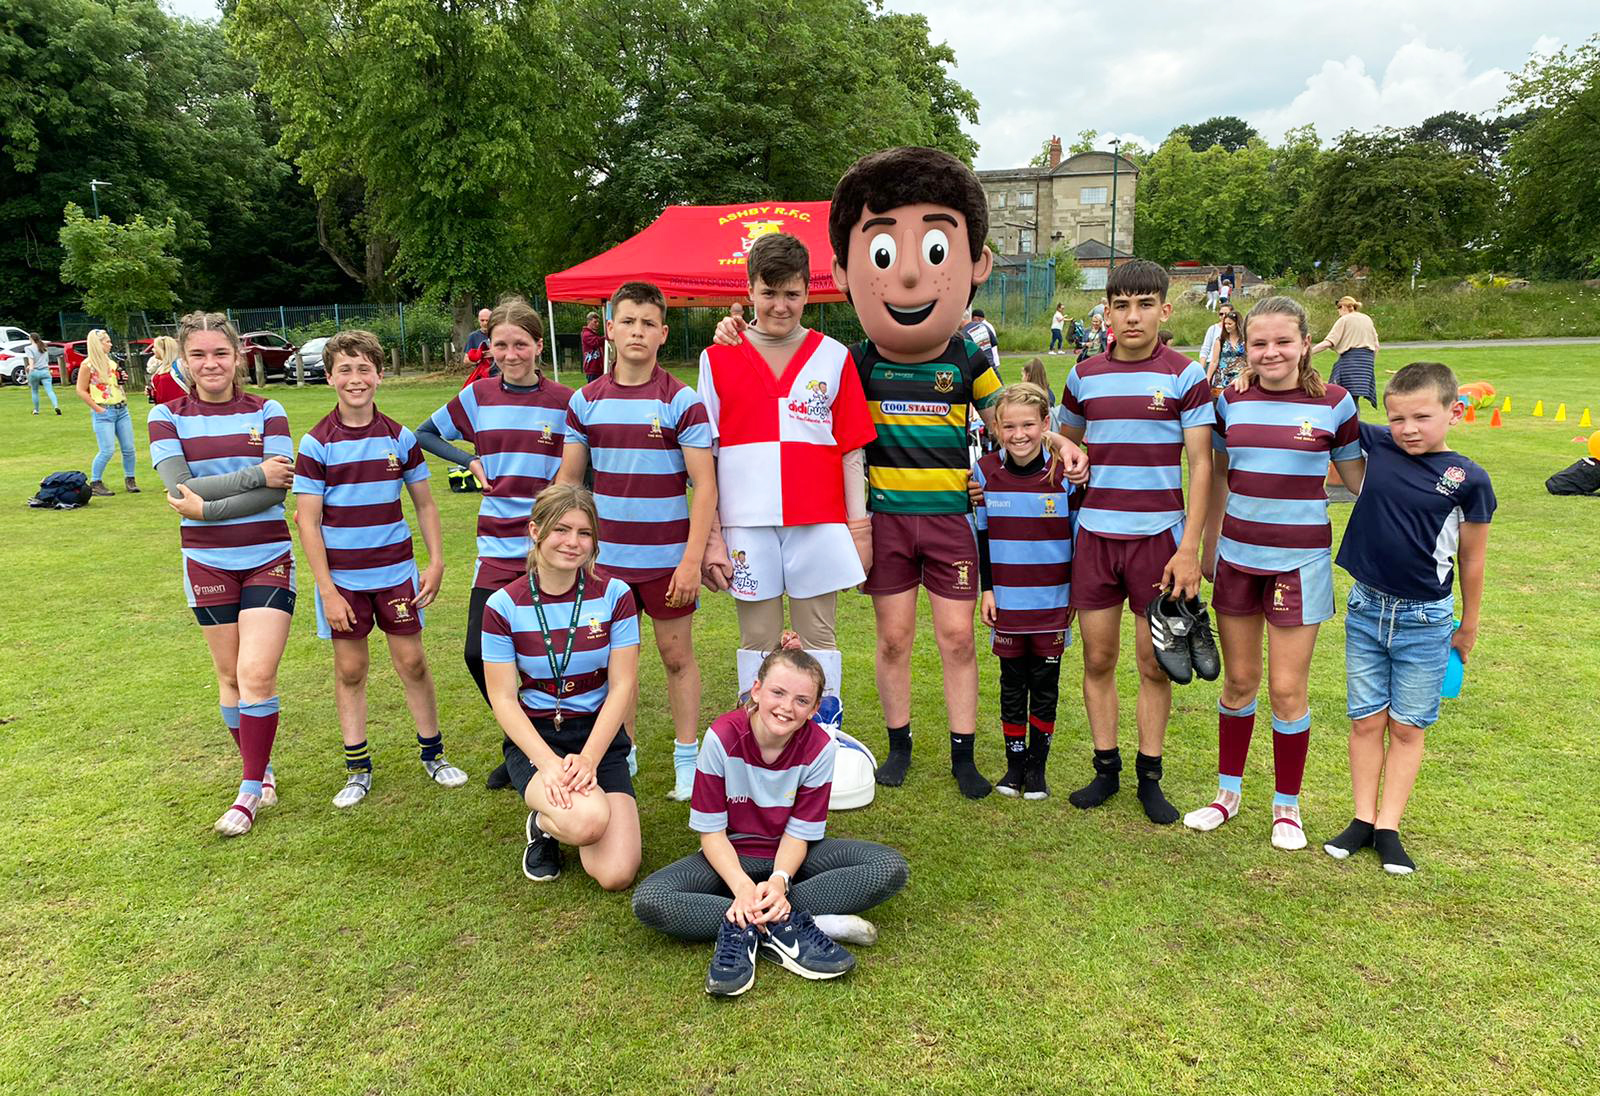 The First Ashby Sport Fun Day was a Great Success!